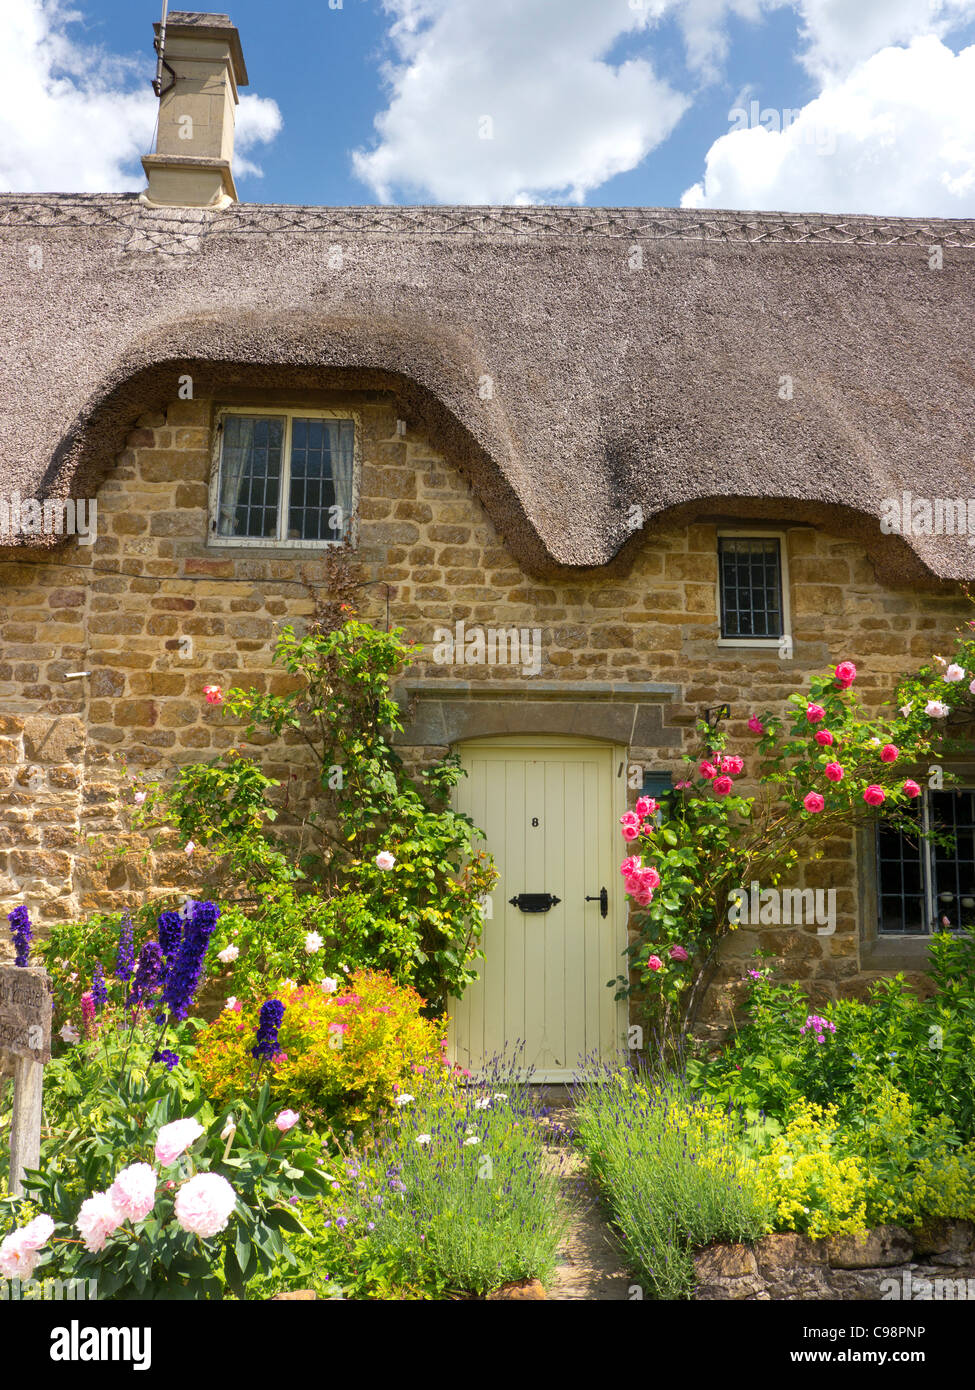 Detail of Thatched cottage, Cotswolds, Gloucestershire, England - Stock Image